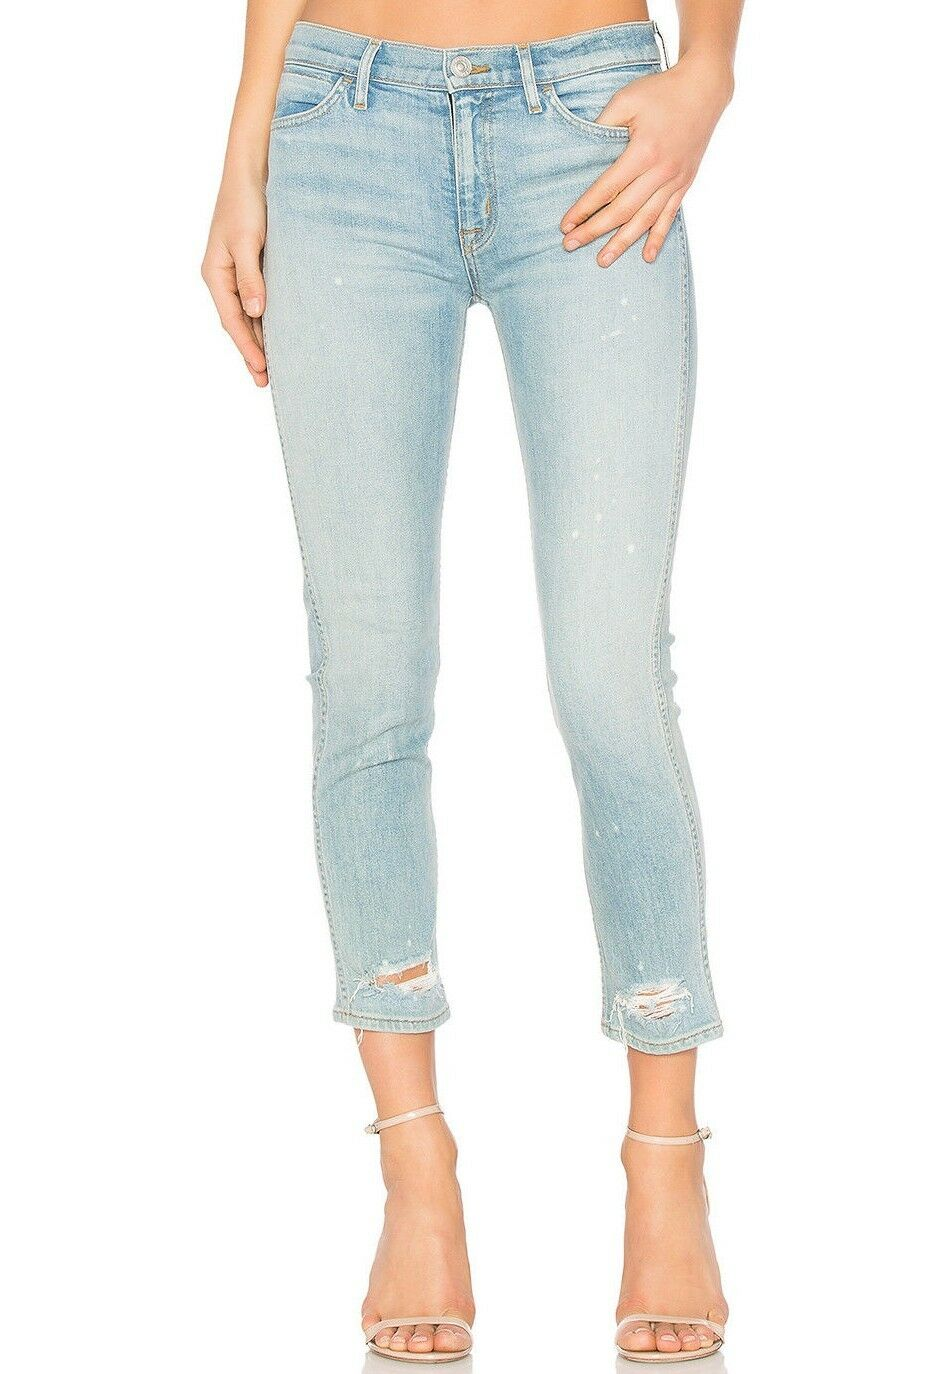 215 NWT HUDSON Sz26 SAVY CROP MIDRISE STRAIGHT STRETCH JEANS REVOLUTIONARY